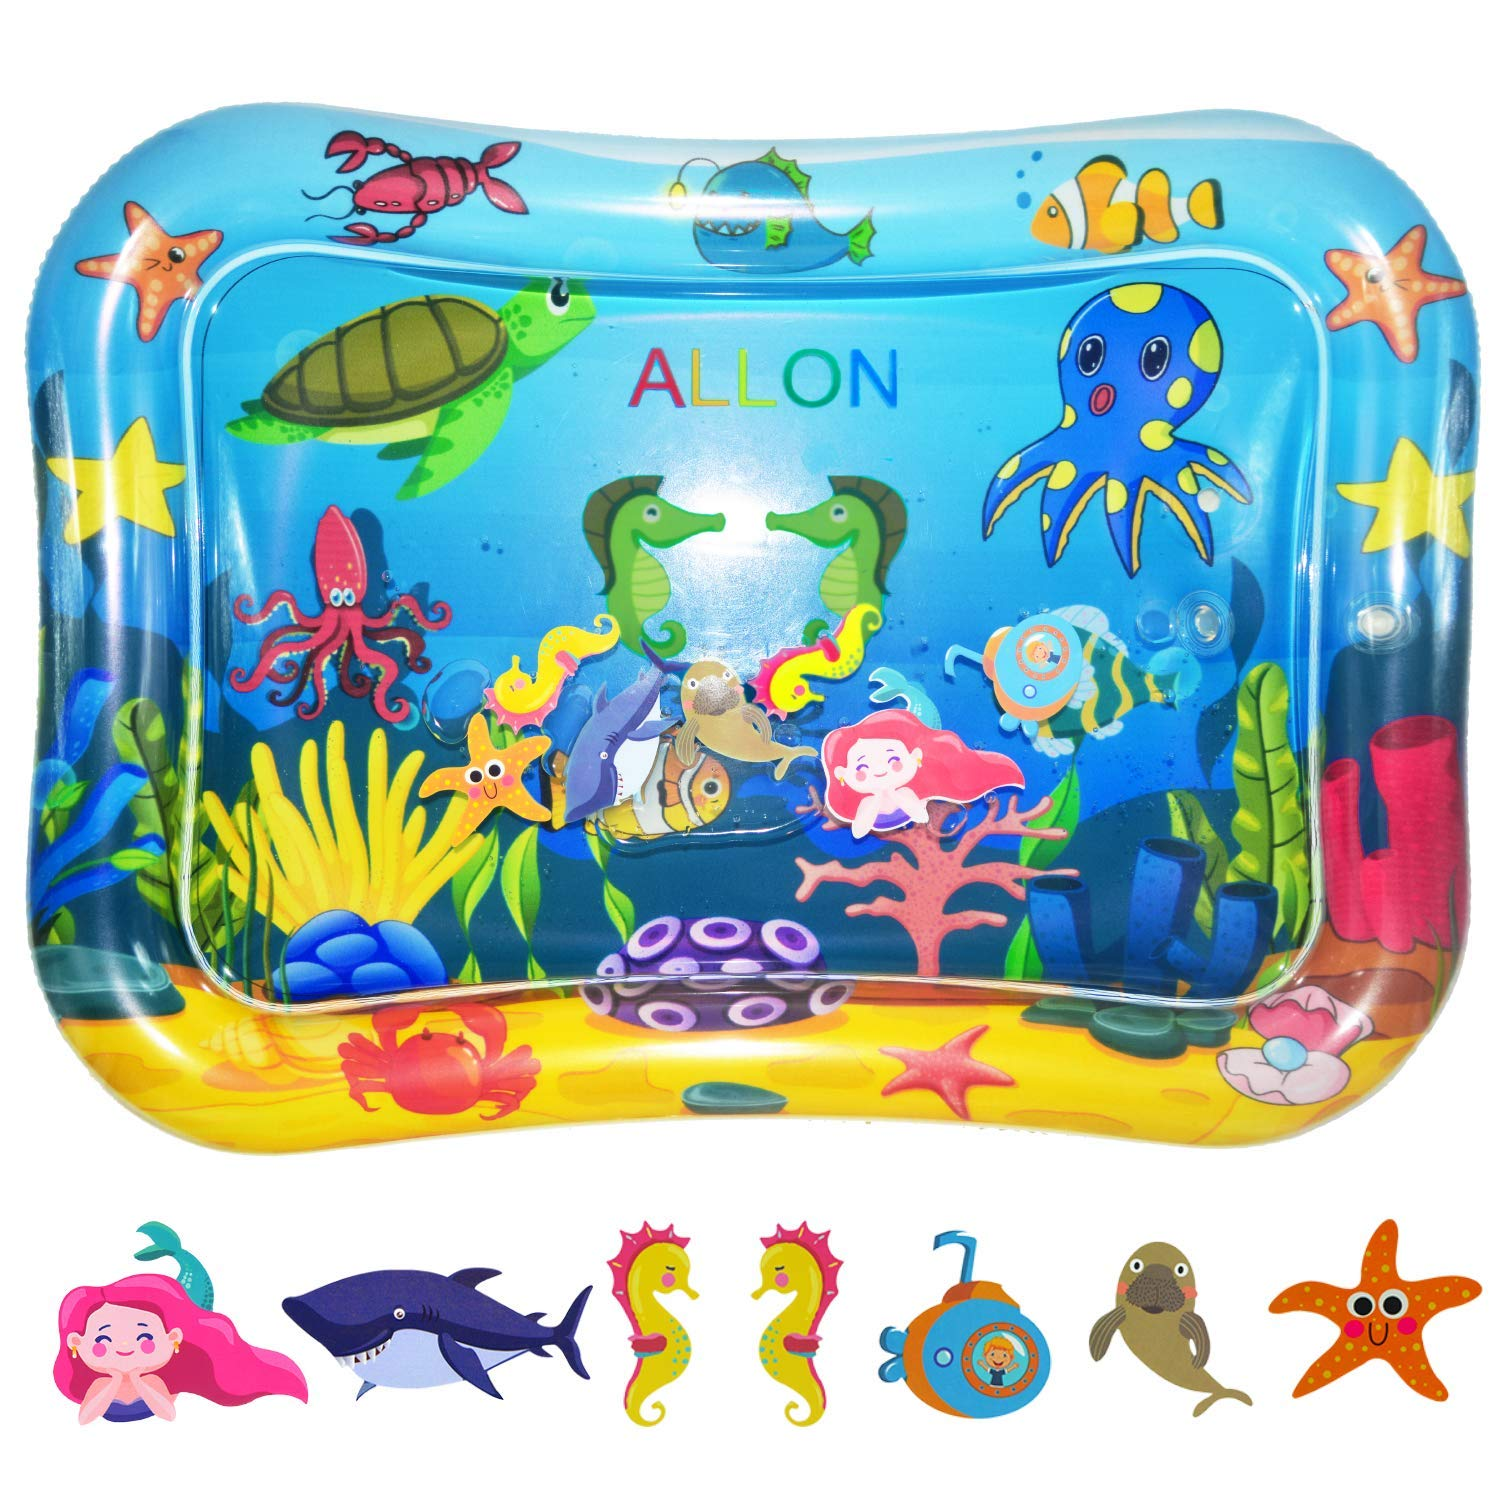 ALLON Tummy Time Baby Water Play Mat, Leakproof Inflatable Play Mats for Infants & Toddlers, Best Activity Centers Baby Sensory Toys for 3 6 9 Months